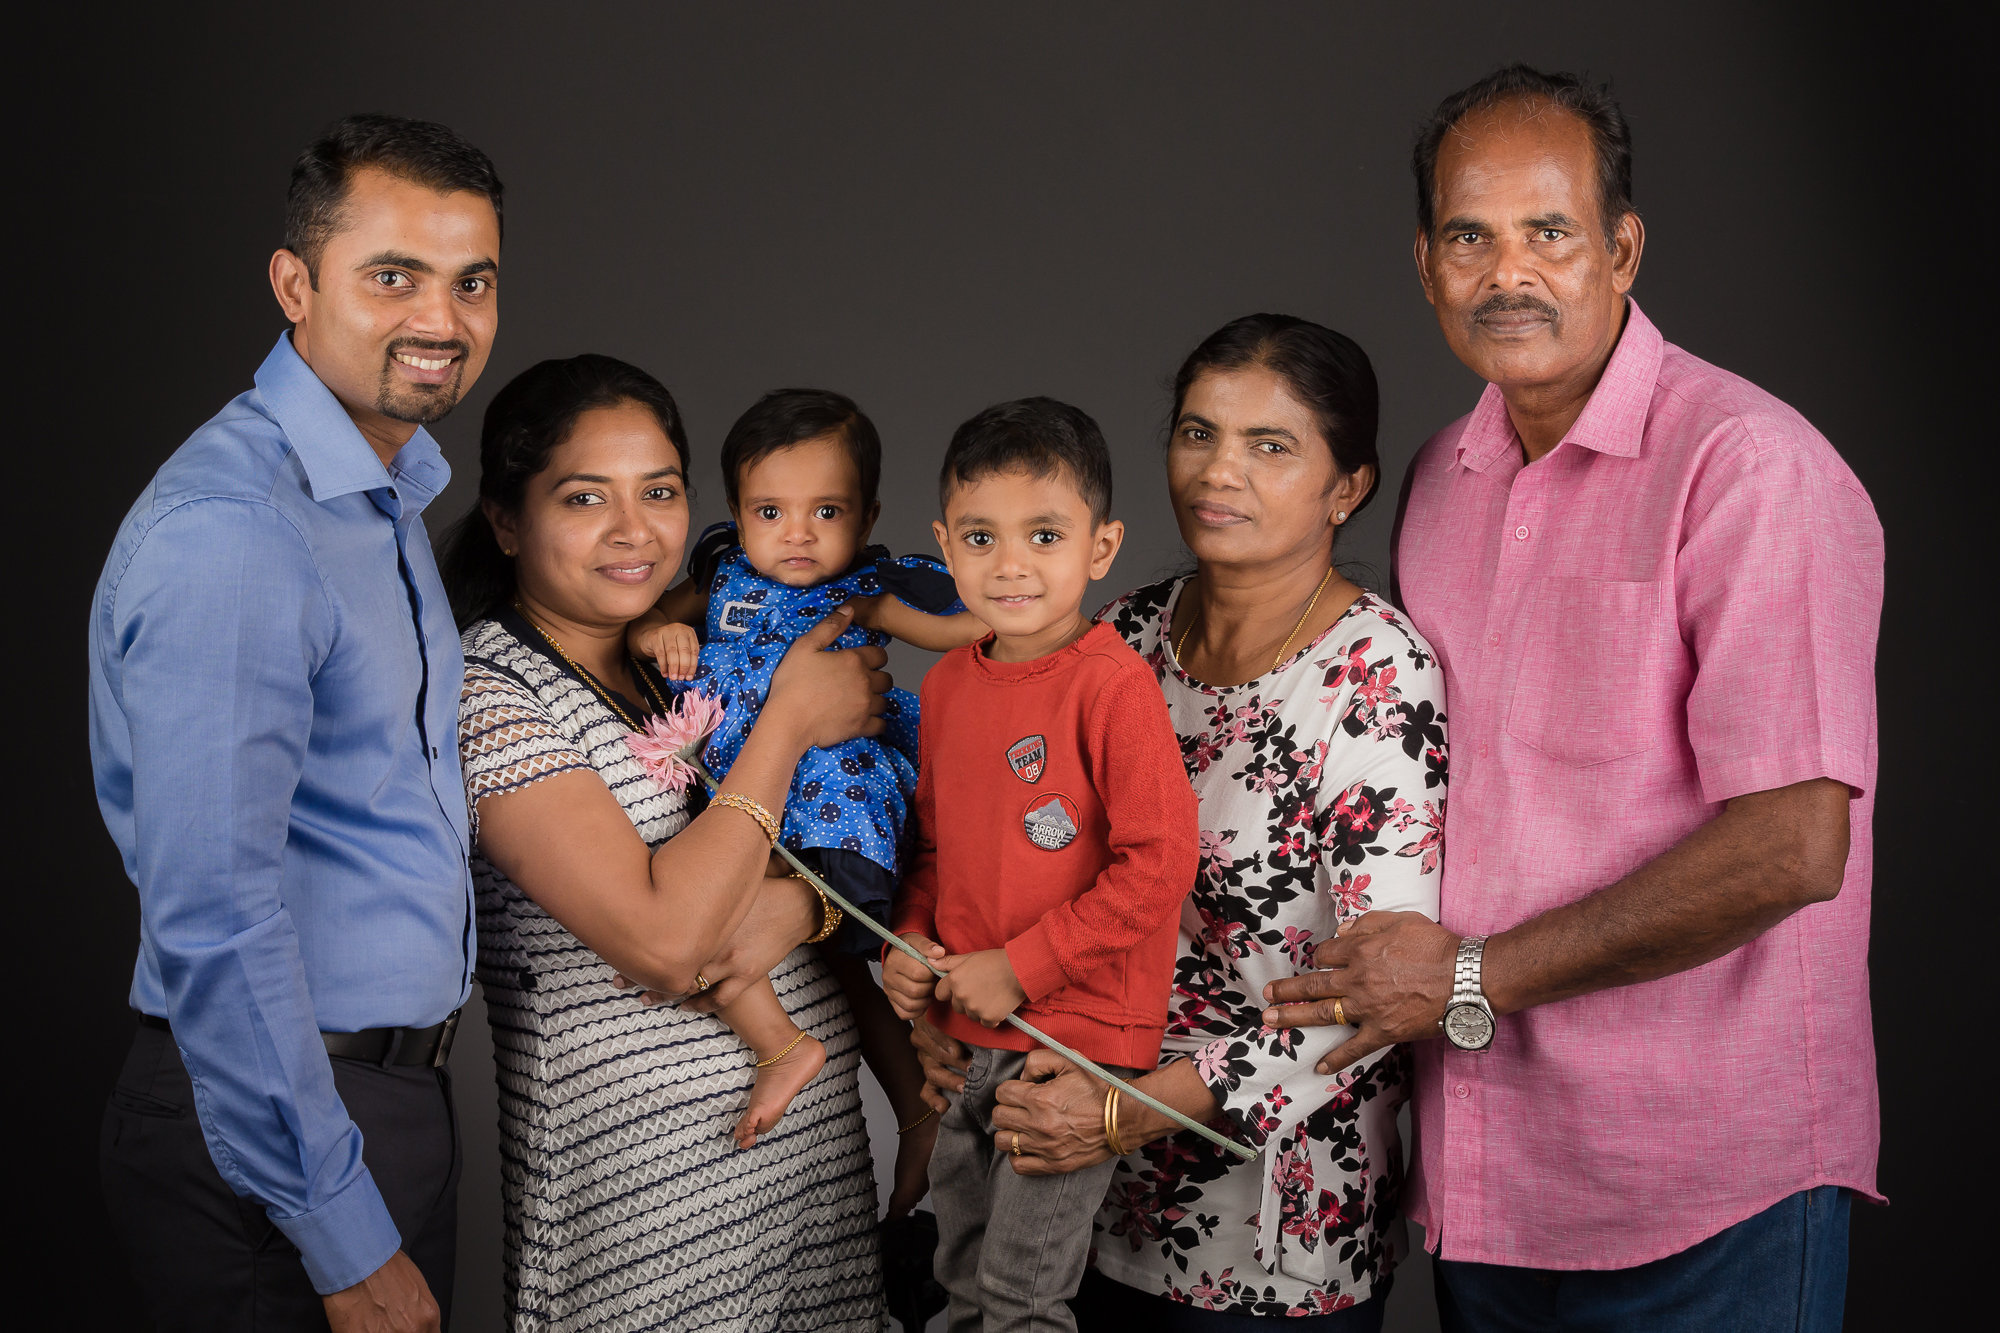 Capturing 3 generations off your family in your portraits,  YourFamilyDeserveThis.com